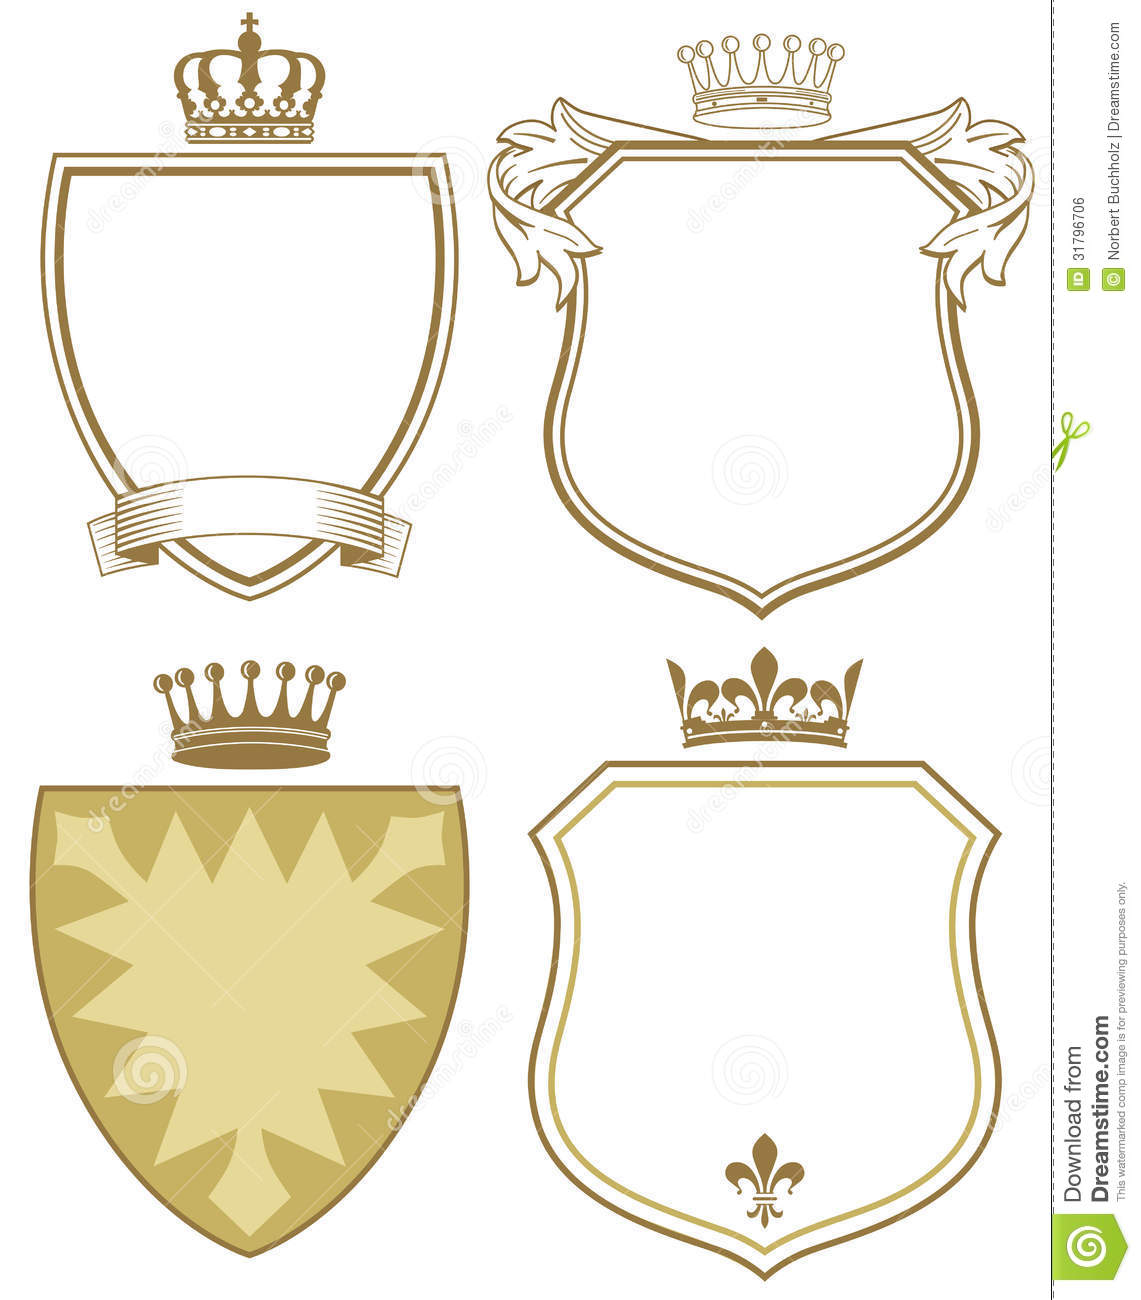 Coat Of Arms Or Shields